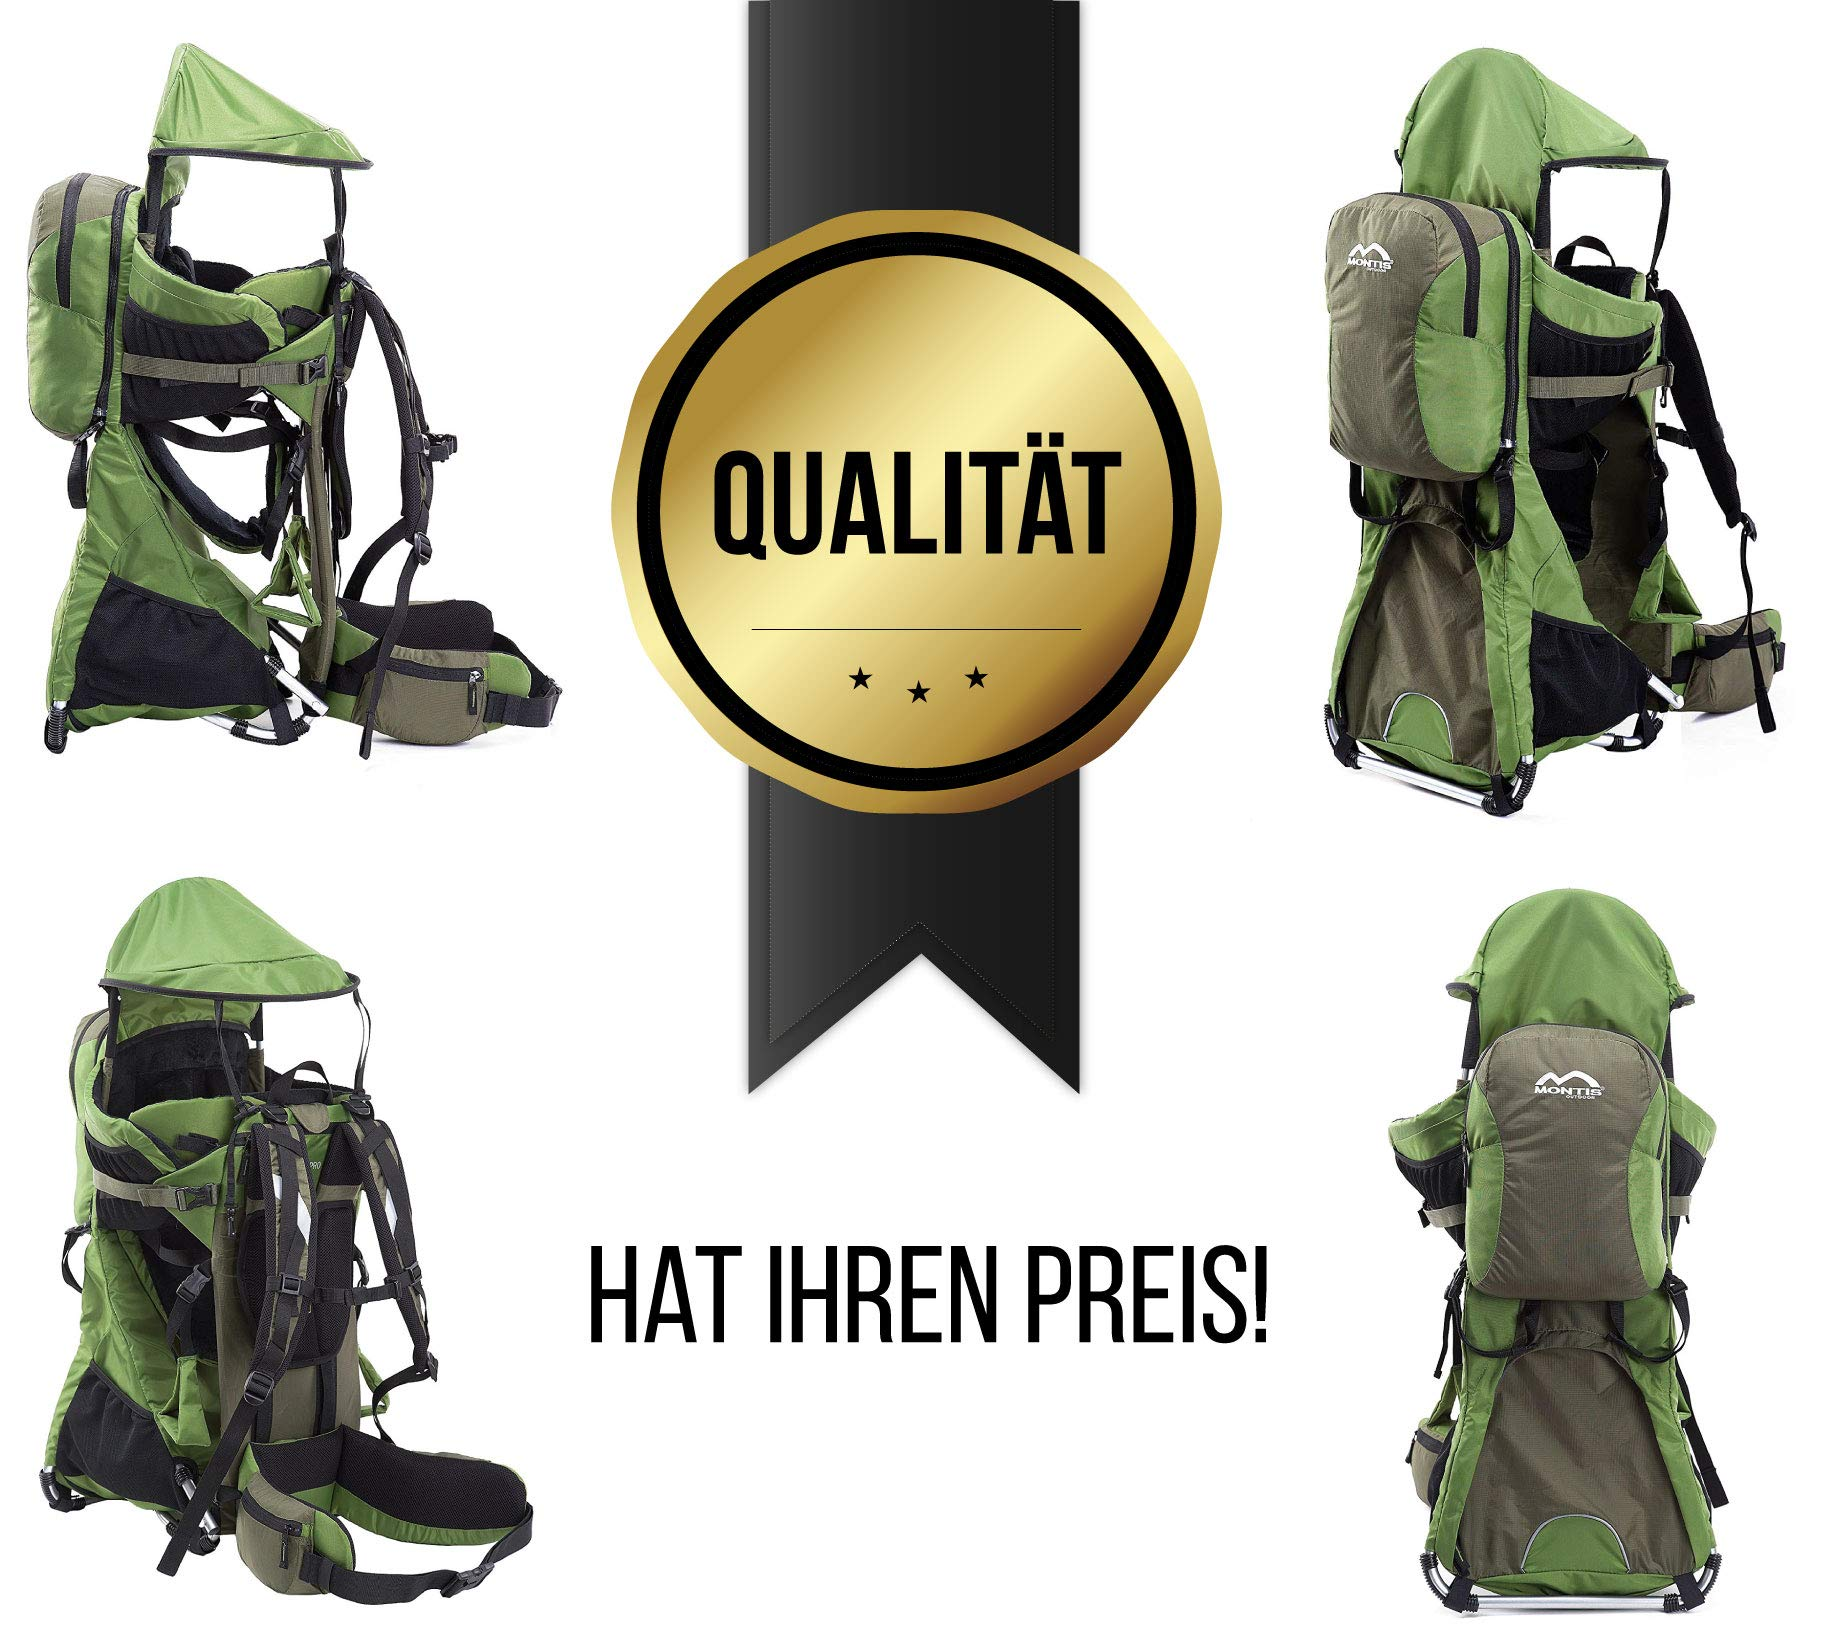 MONTIS RANGER PRO - Premium Backpack/Child Carrier - Holds up to 25kg M MONTIS OUTDOOR 89cm high, 37cm wide | Carries loads up to 25kg, seat bag 30L | Approx. 2.3kg (without extras) Easy-clean outer material | Fully-adjustable, padded 5-point child harness Super soft plush lining, raised wind guard, can be loaded from both sides | Fully-adjustable carry support system, additional ergonomic options for women | Comfortable waist belt for extended wearing with side pockets 10